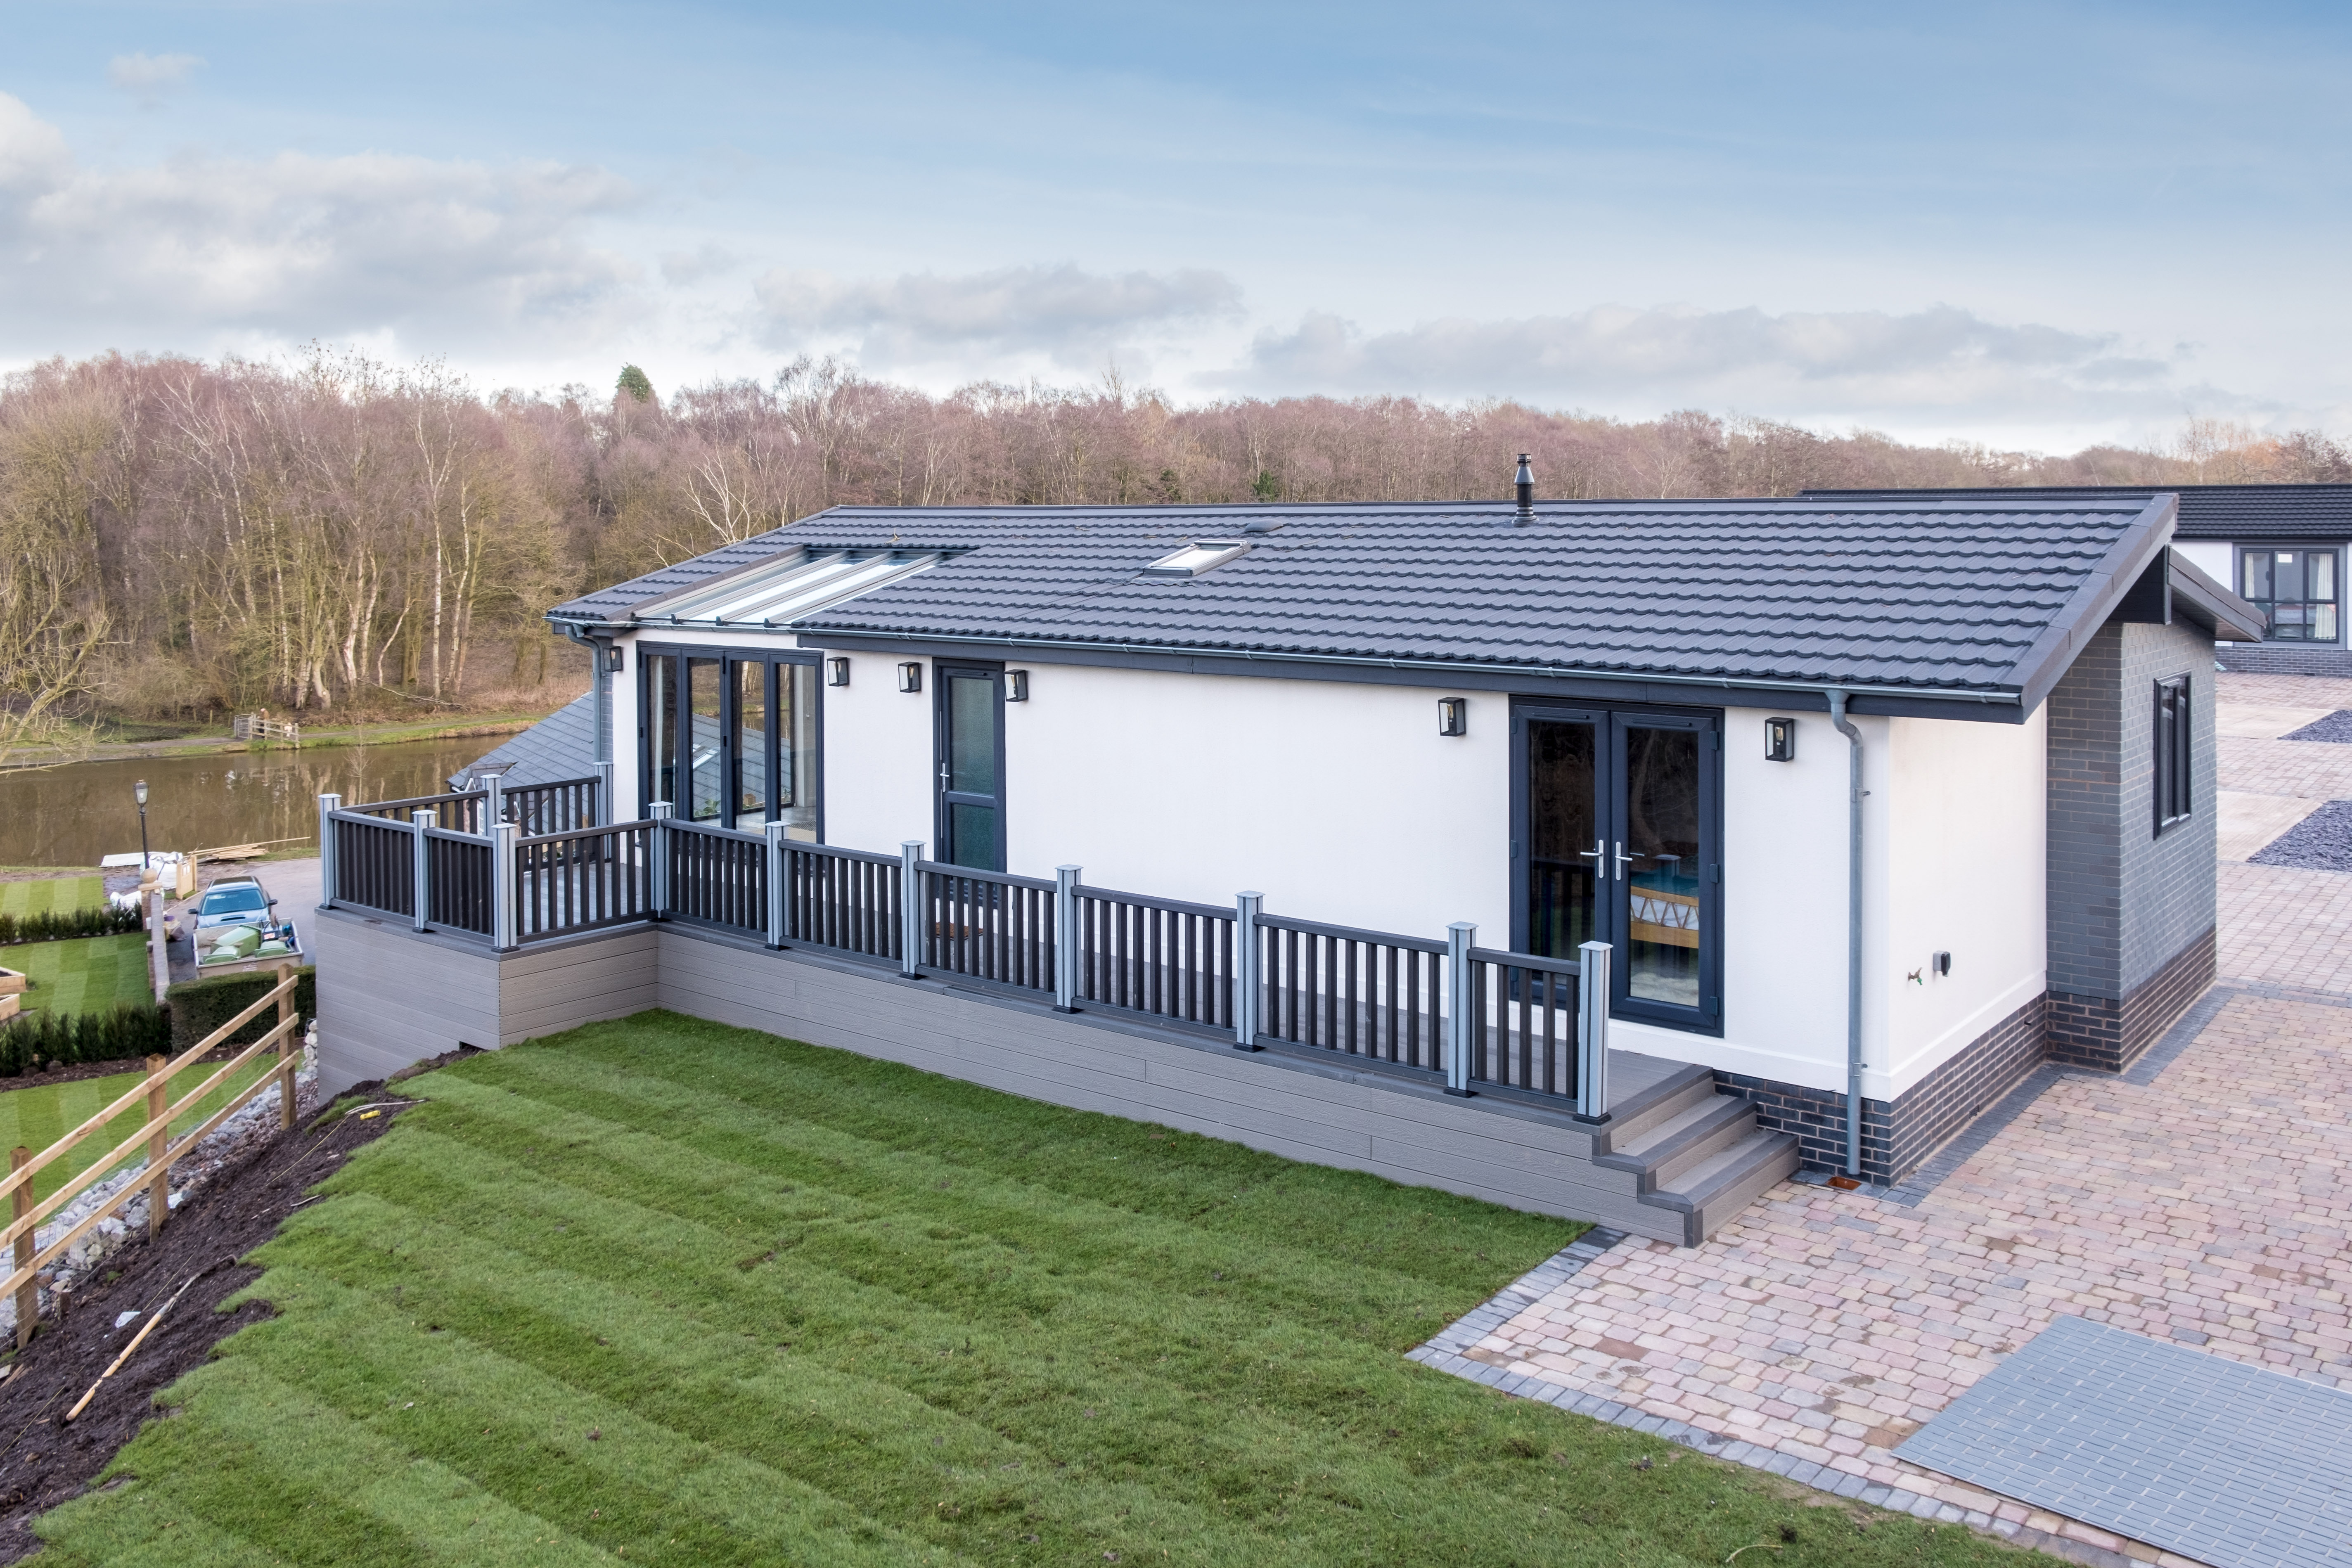 The Pathfinder Evolution Park Home at Riverside Park in Cheshire